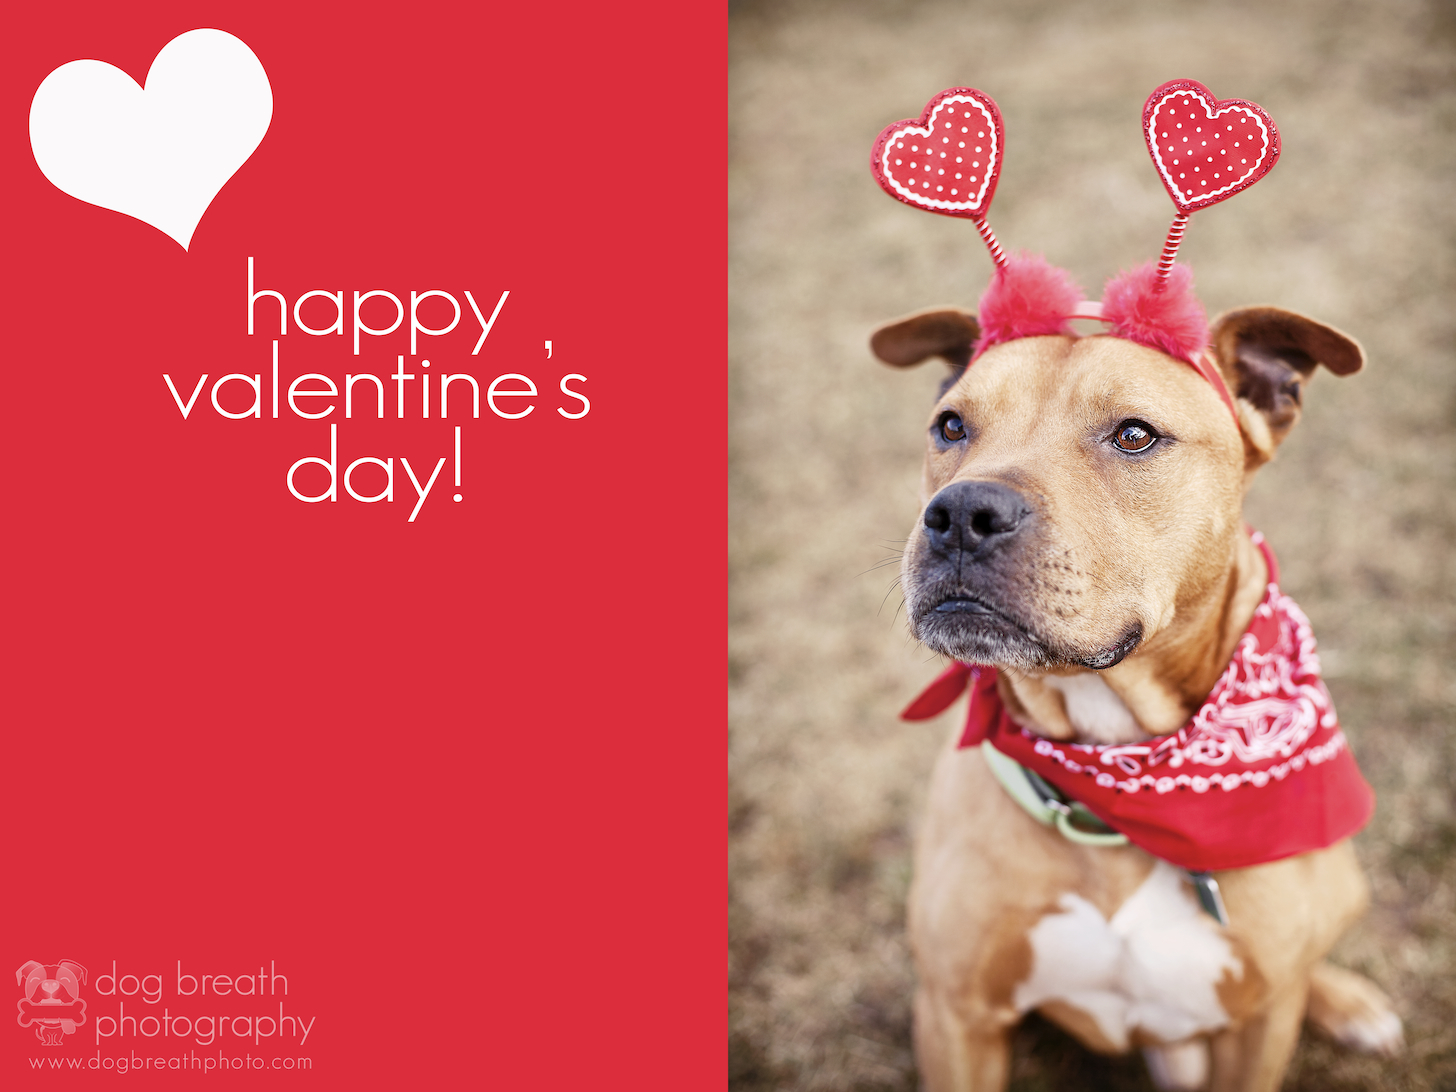 Happy valentine s day dog breath photography blog - Valentines day pictures with puppies ...